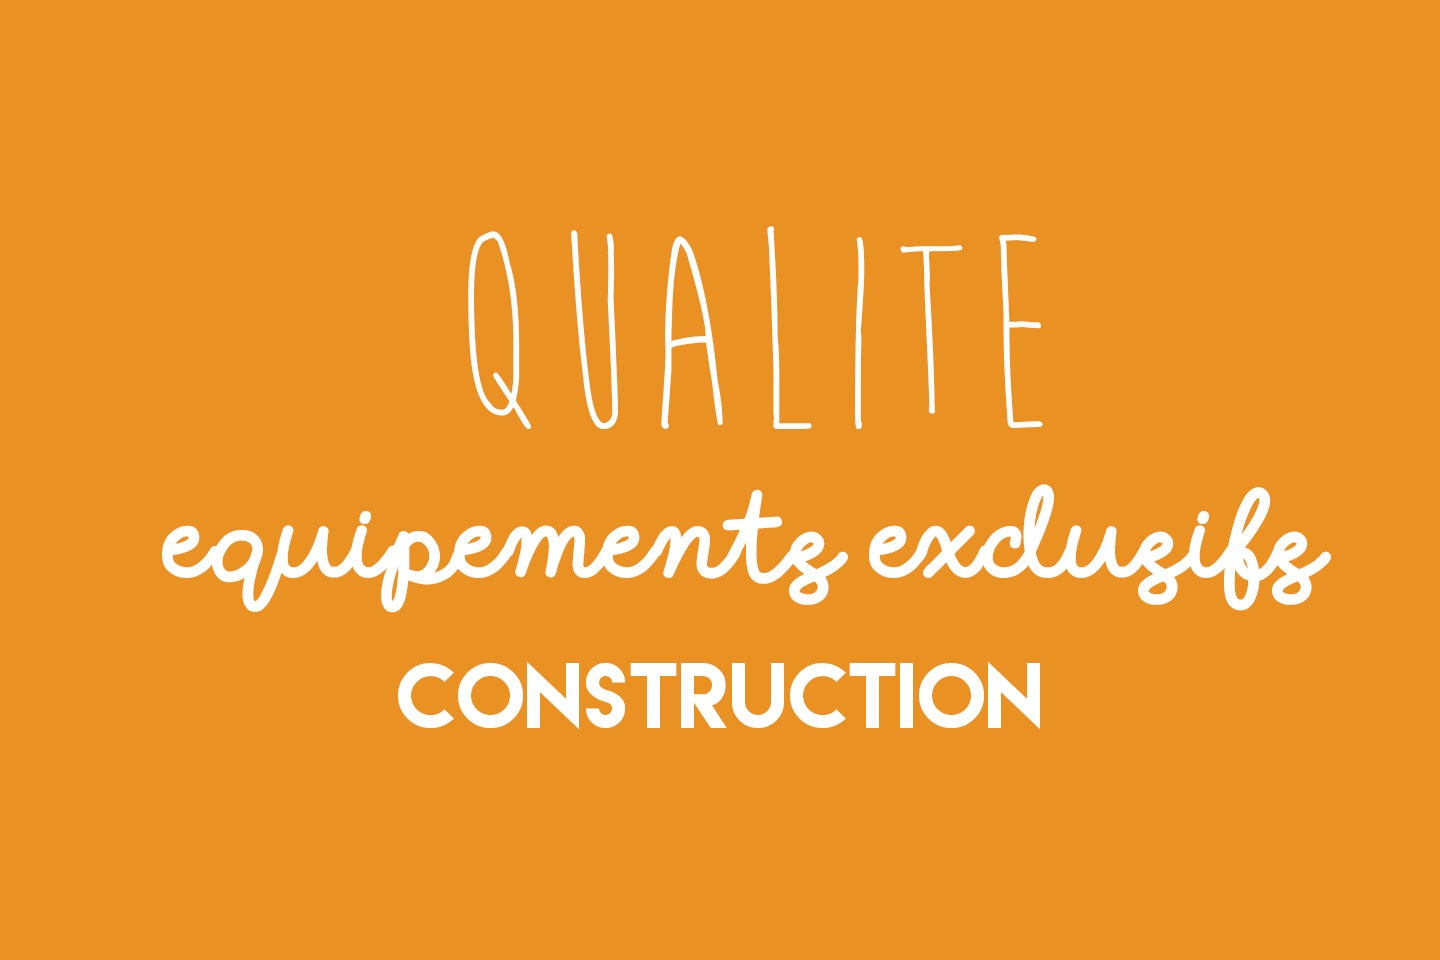 qualité-exclusivité-construction